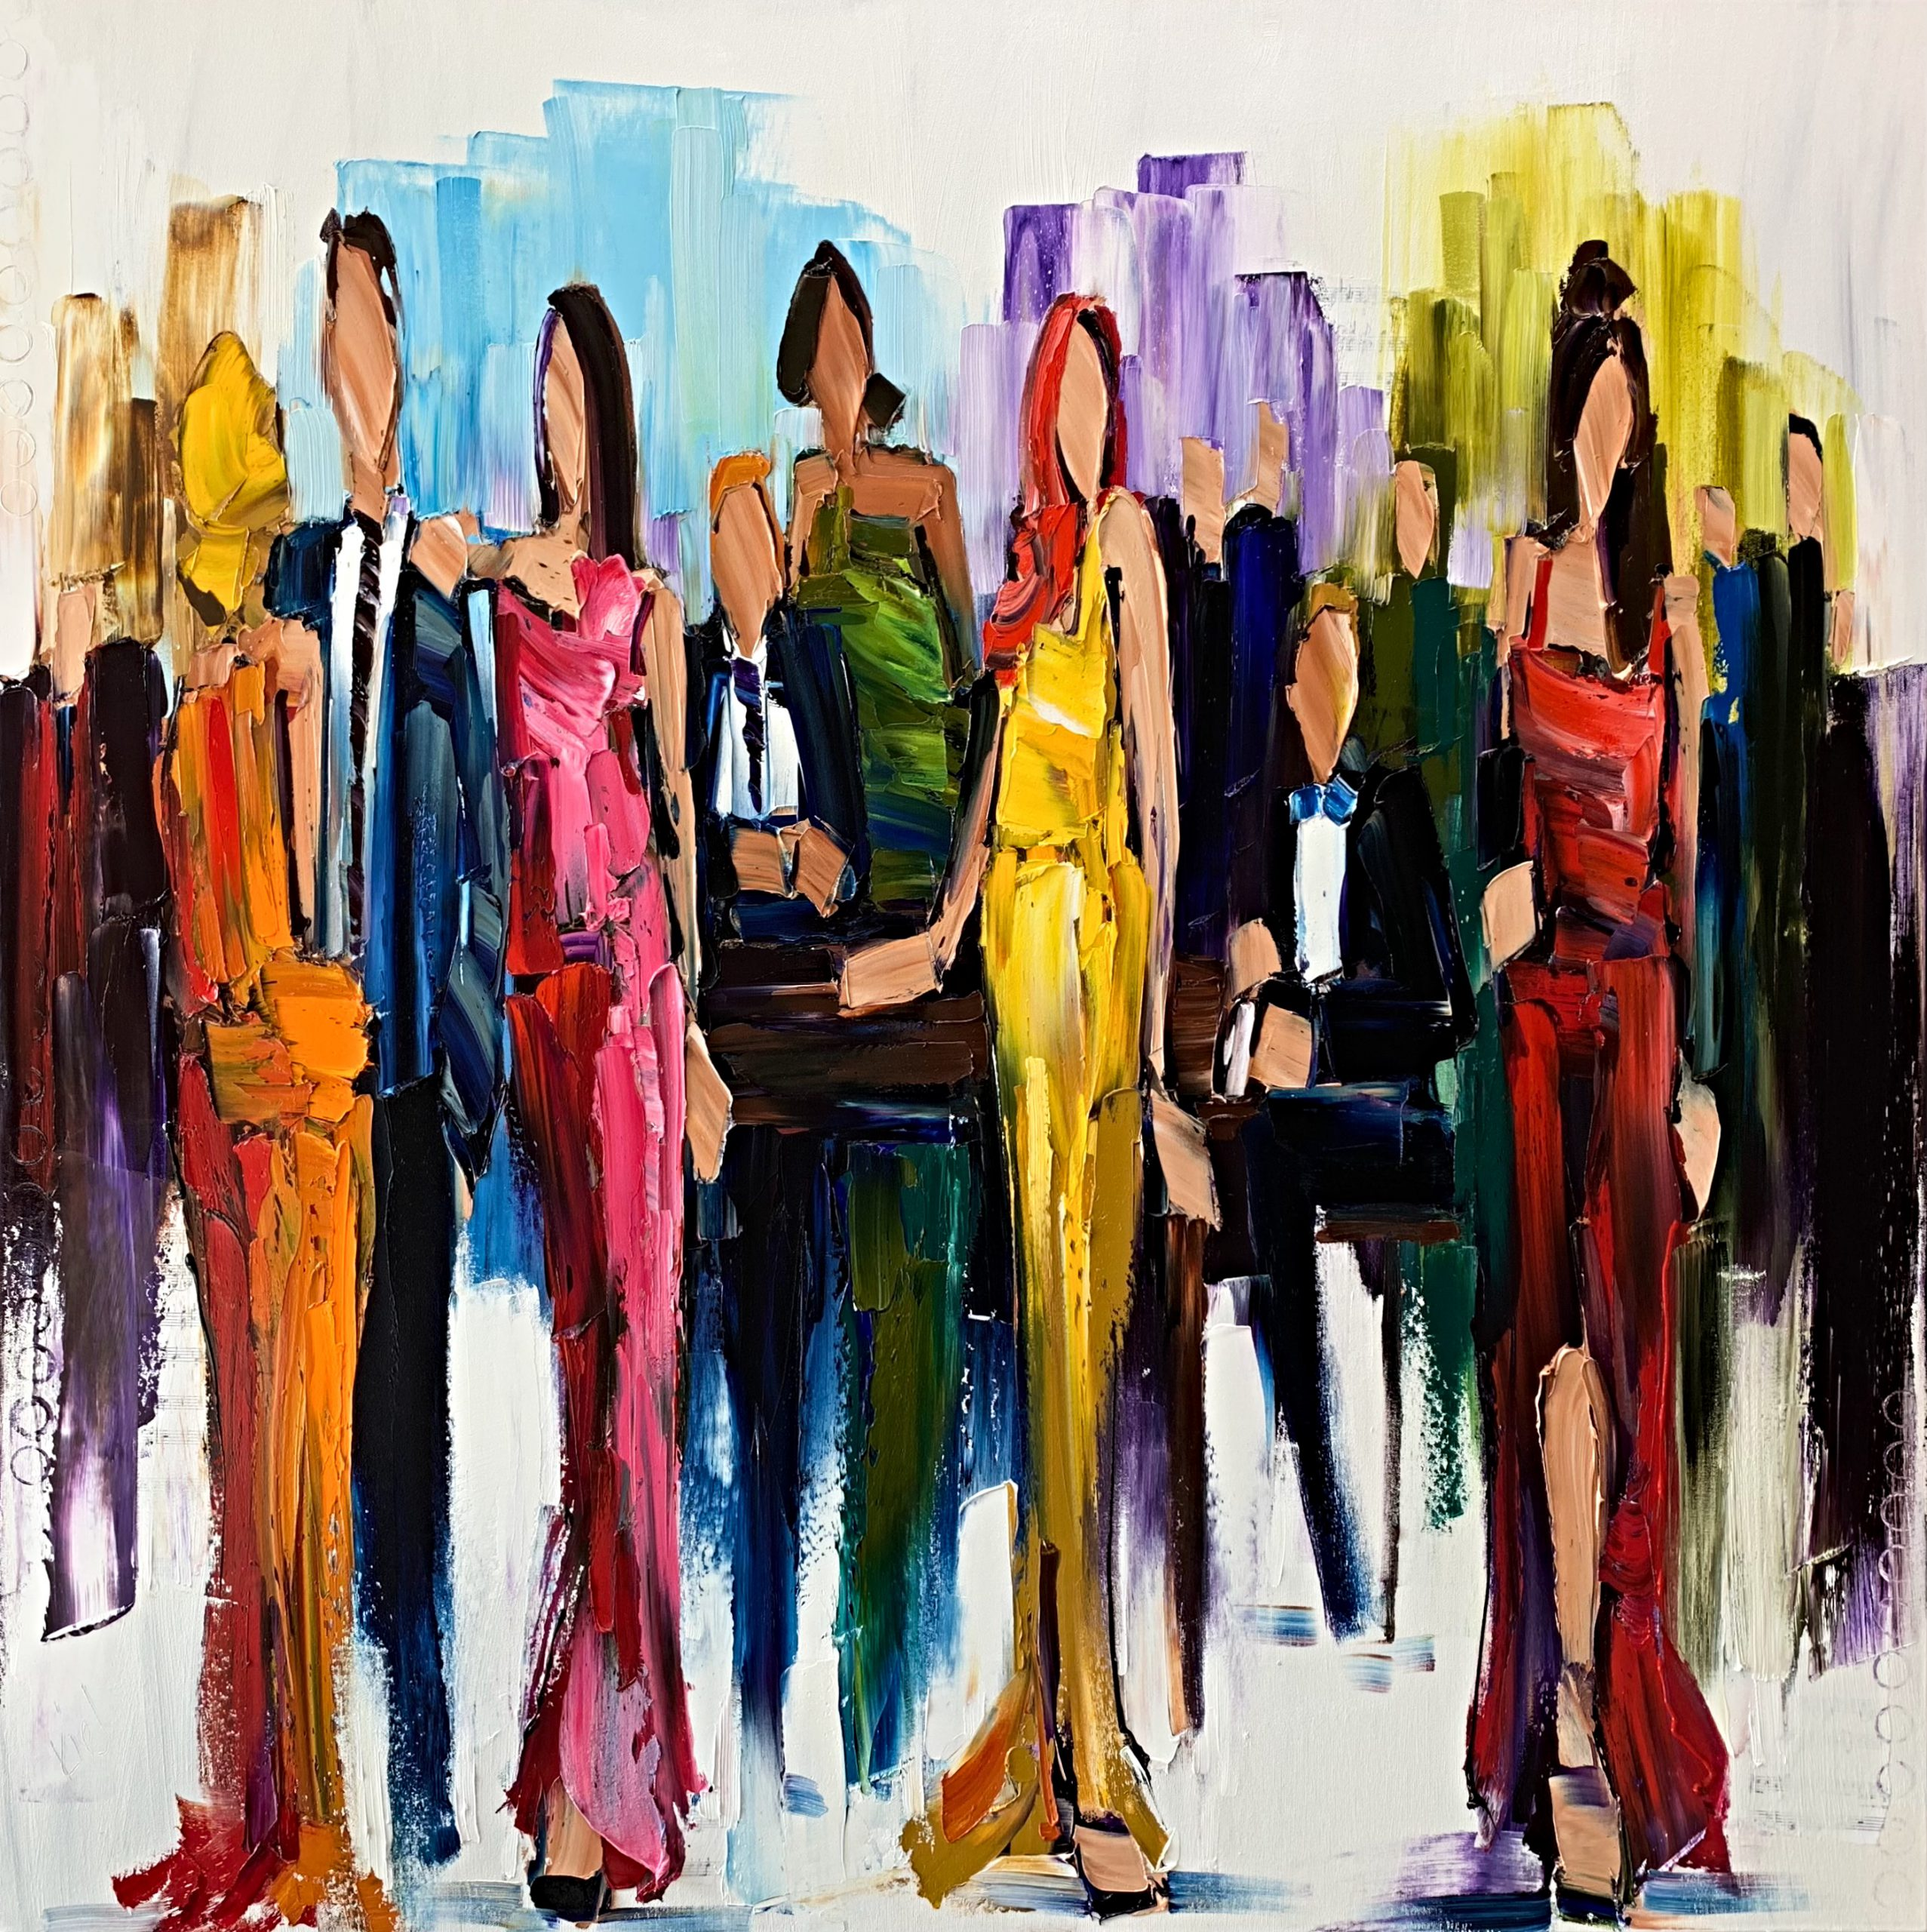 Come and go like Fashion, oil cocktail party painting by Kimberly Kiel   Effusion Art Gallery + Cast Glass Studio, Invermere BC